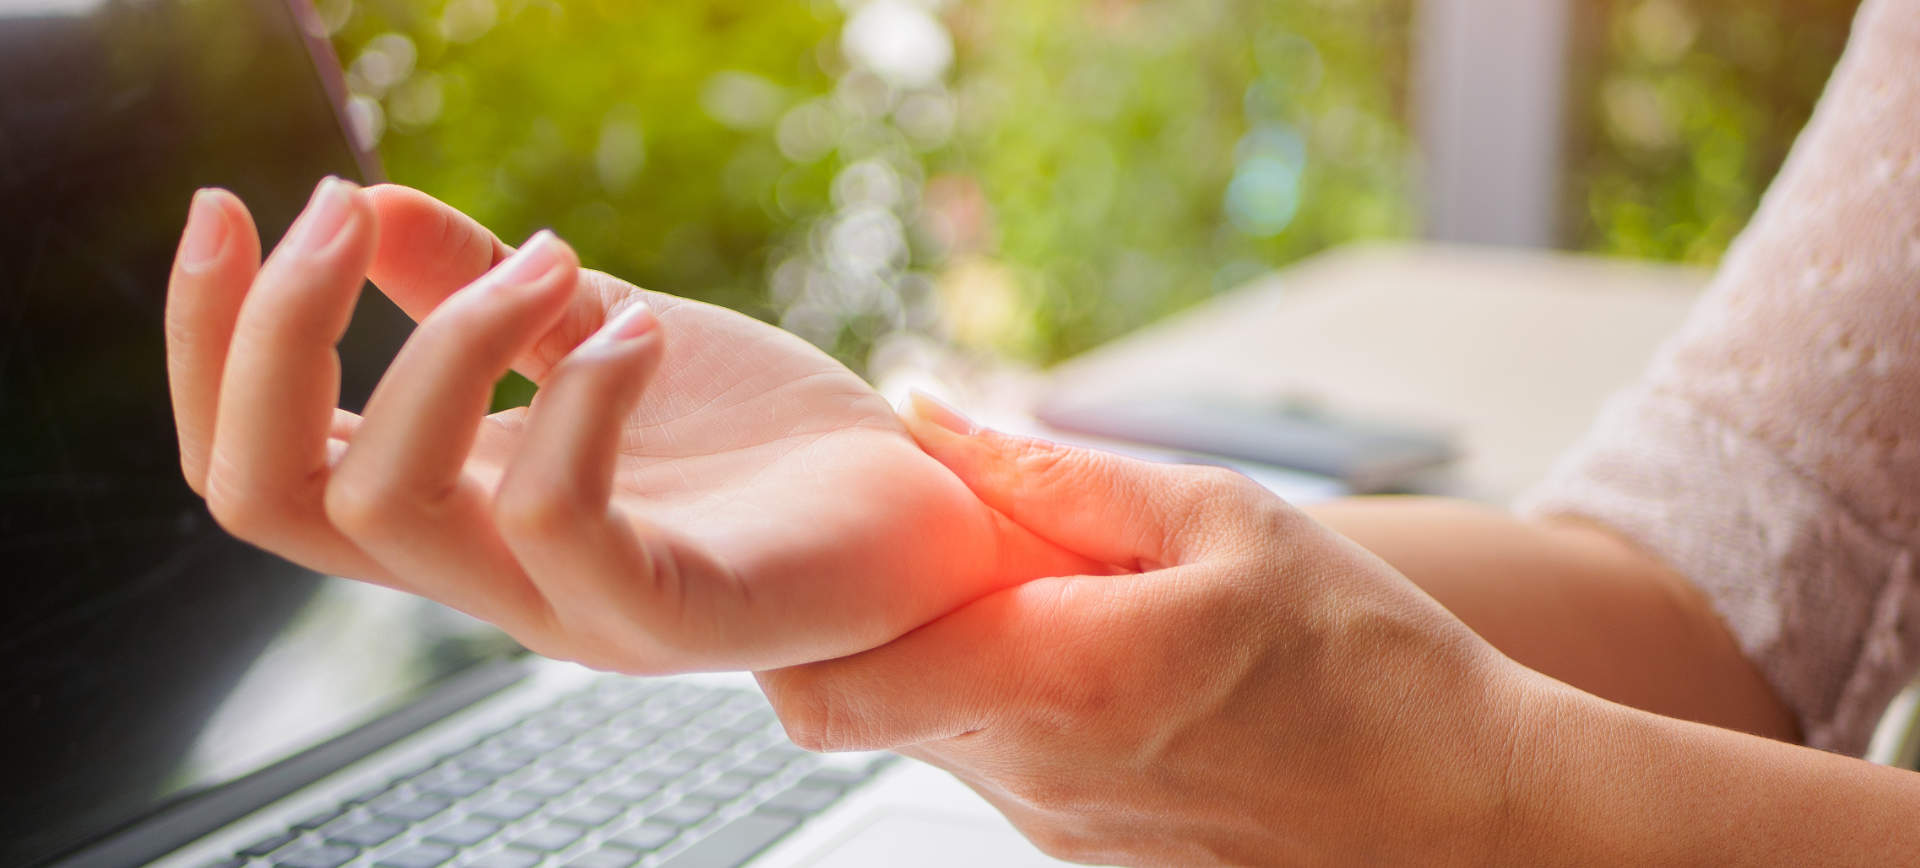 Hand Sprain/Strain Treatment in Mountain View